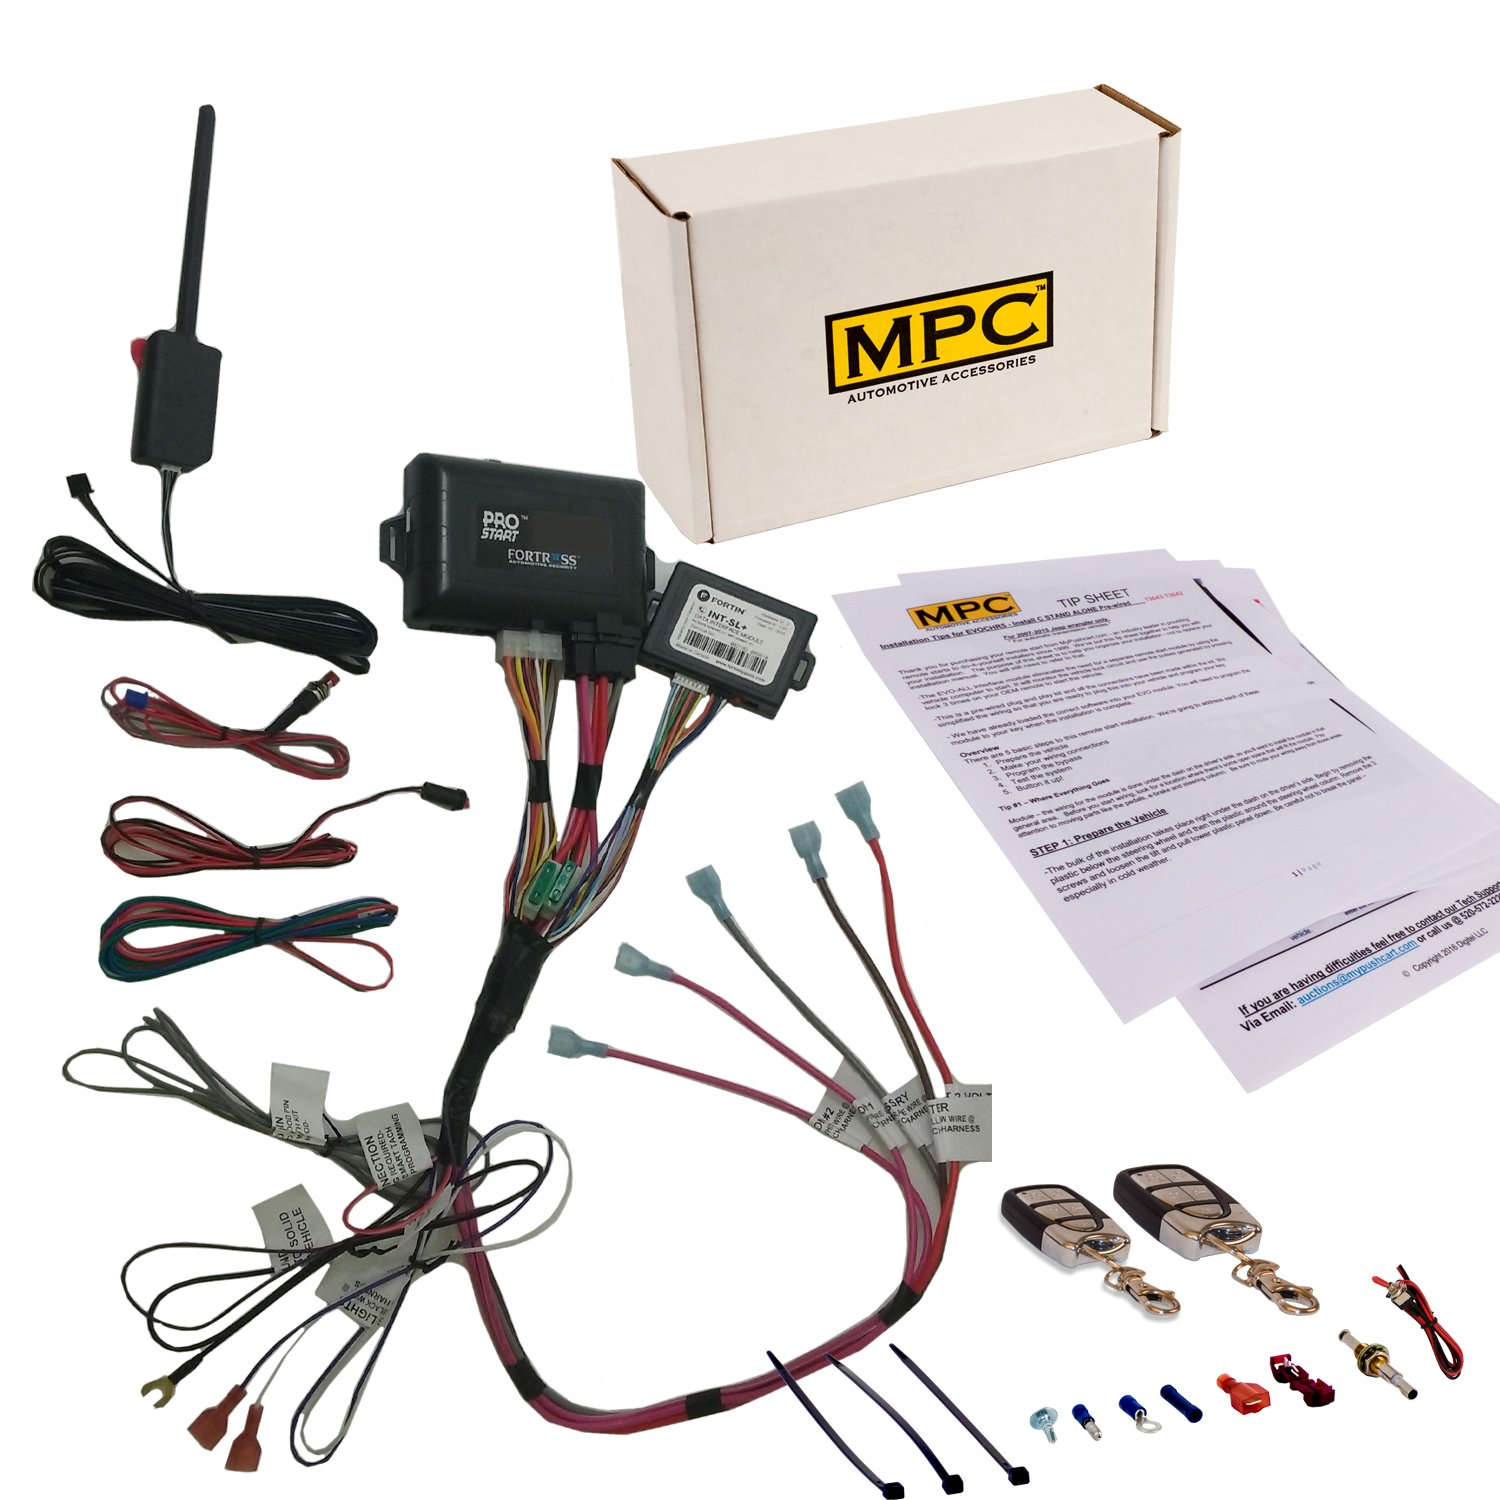 Mpc Remote Start Keyless Entry Kit Fits Select 2002 Chevy S10 Pick Up Wiring Diagram Window Chevrolet And Gmc Vehicles 2009 Prewired To Simplify Install Automotive